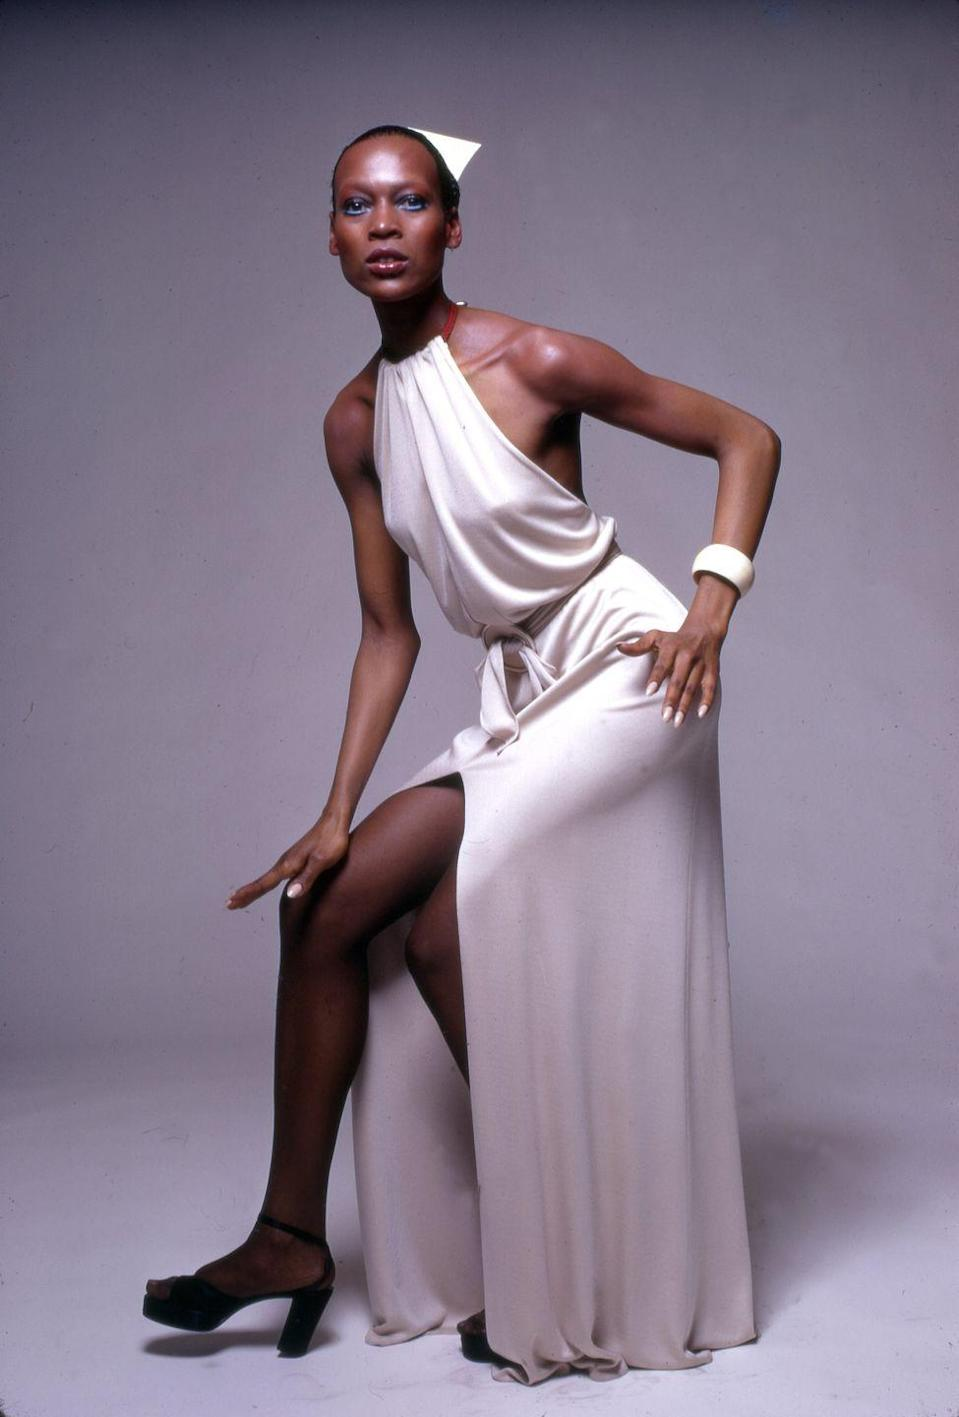 "<p>Naomi Sims was the <a href=""https://www.nytimes.com/2009/08/04/fashion/04sims.html"" rel=""nofollow noopener"" target=""_blank"" data-ylk=""slk:first Black model"" class=""link rapid-noclick-resp"">first Black model</a> to appear on the cover of <em>Ladies' Home Journal</em> in 1968 as well as the 1969 issue of <em>Life, </em>and her career took off afterwards. She also started her own wig and hairpiece business, which then expanded into cosmetics and skincare before she passed away from cancer in August 2009.</p>"